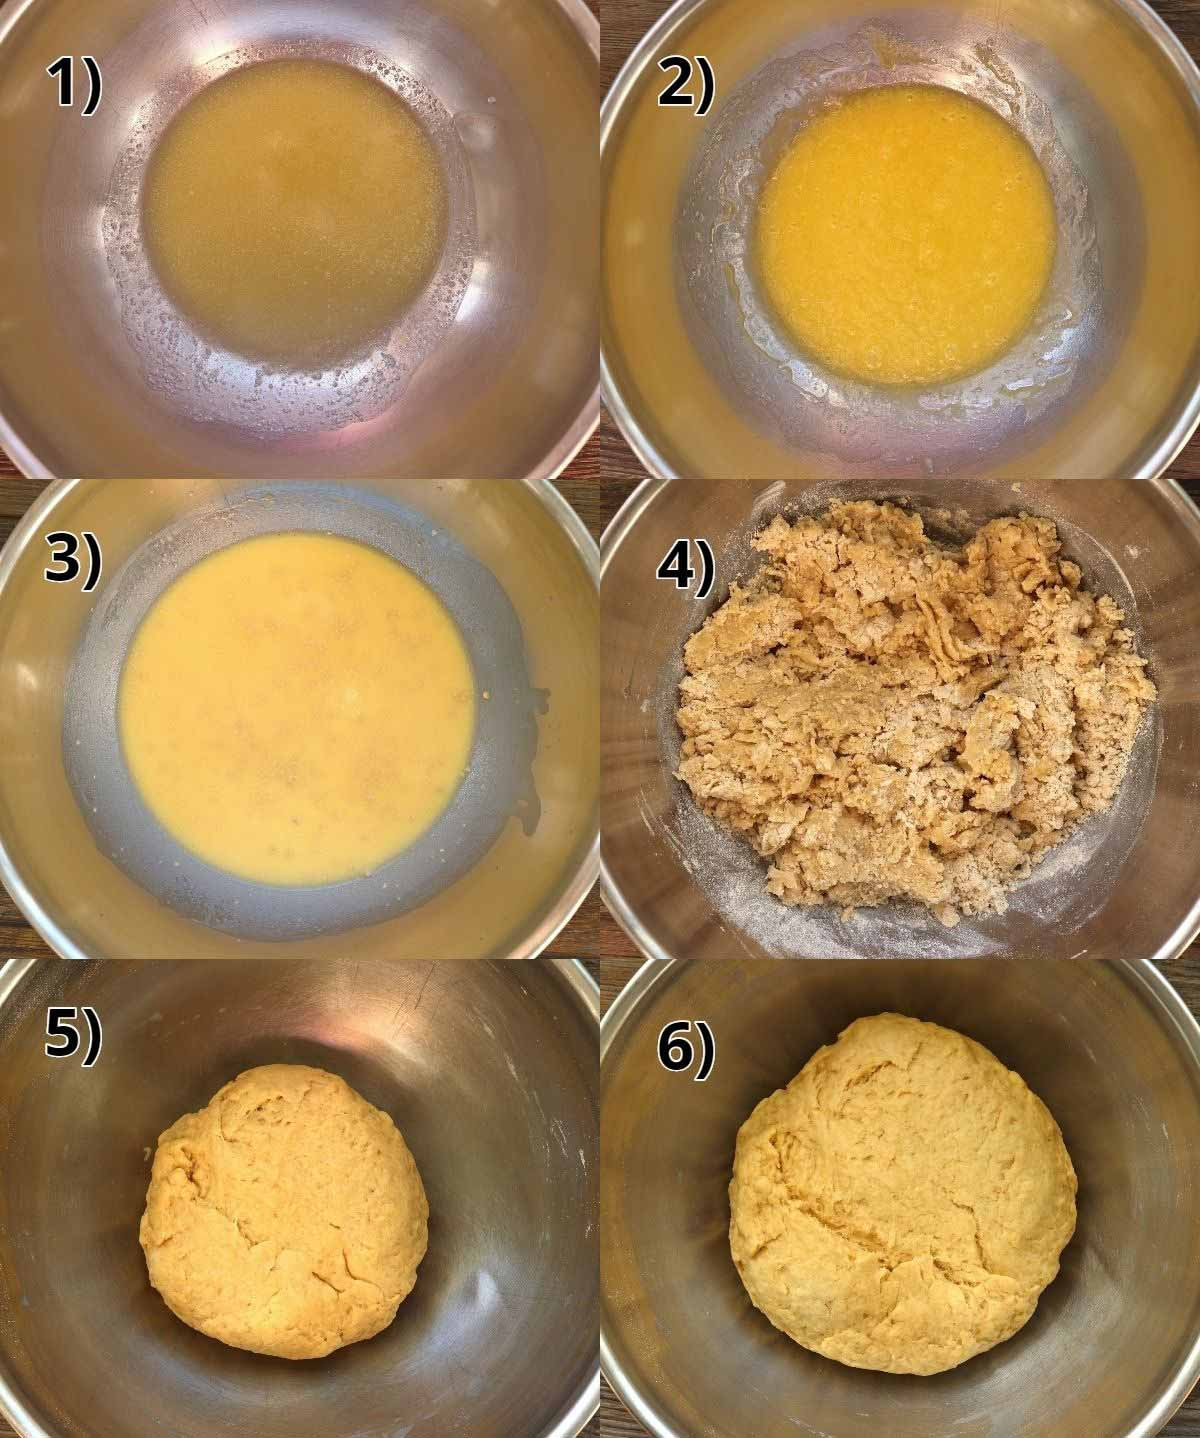 Step-by-step photos of making Viennoise dough in a metal mixing bowl.